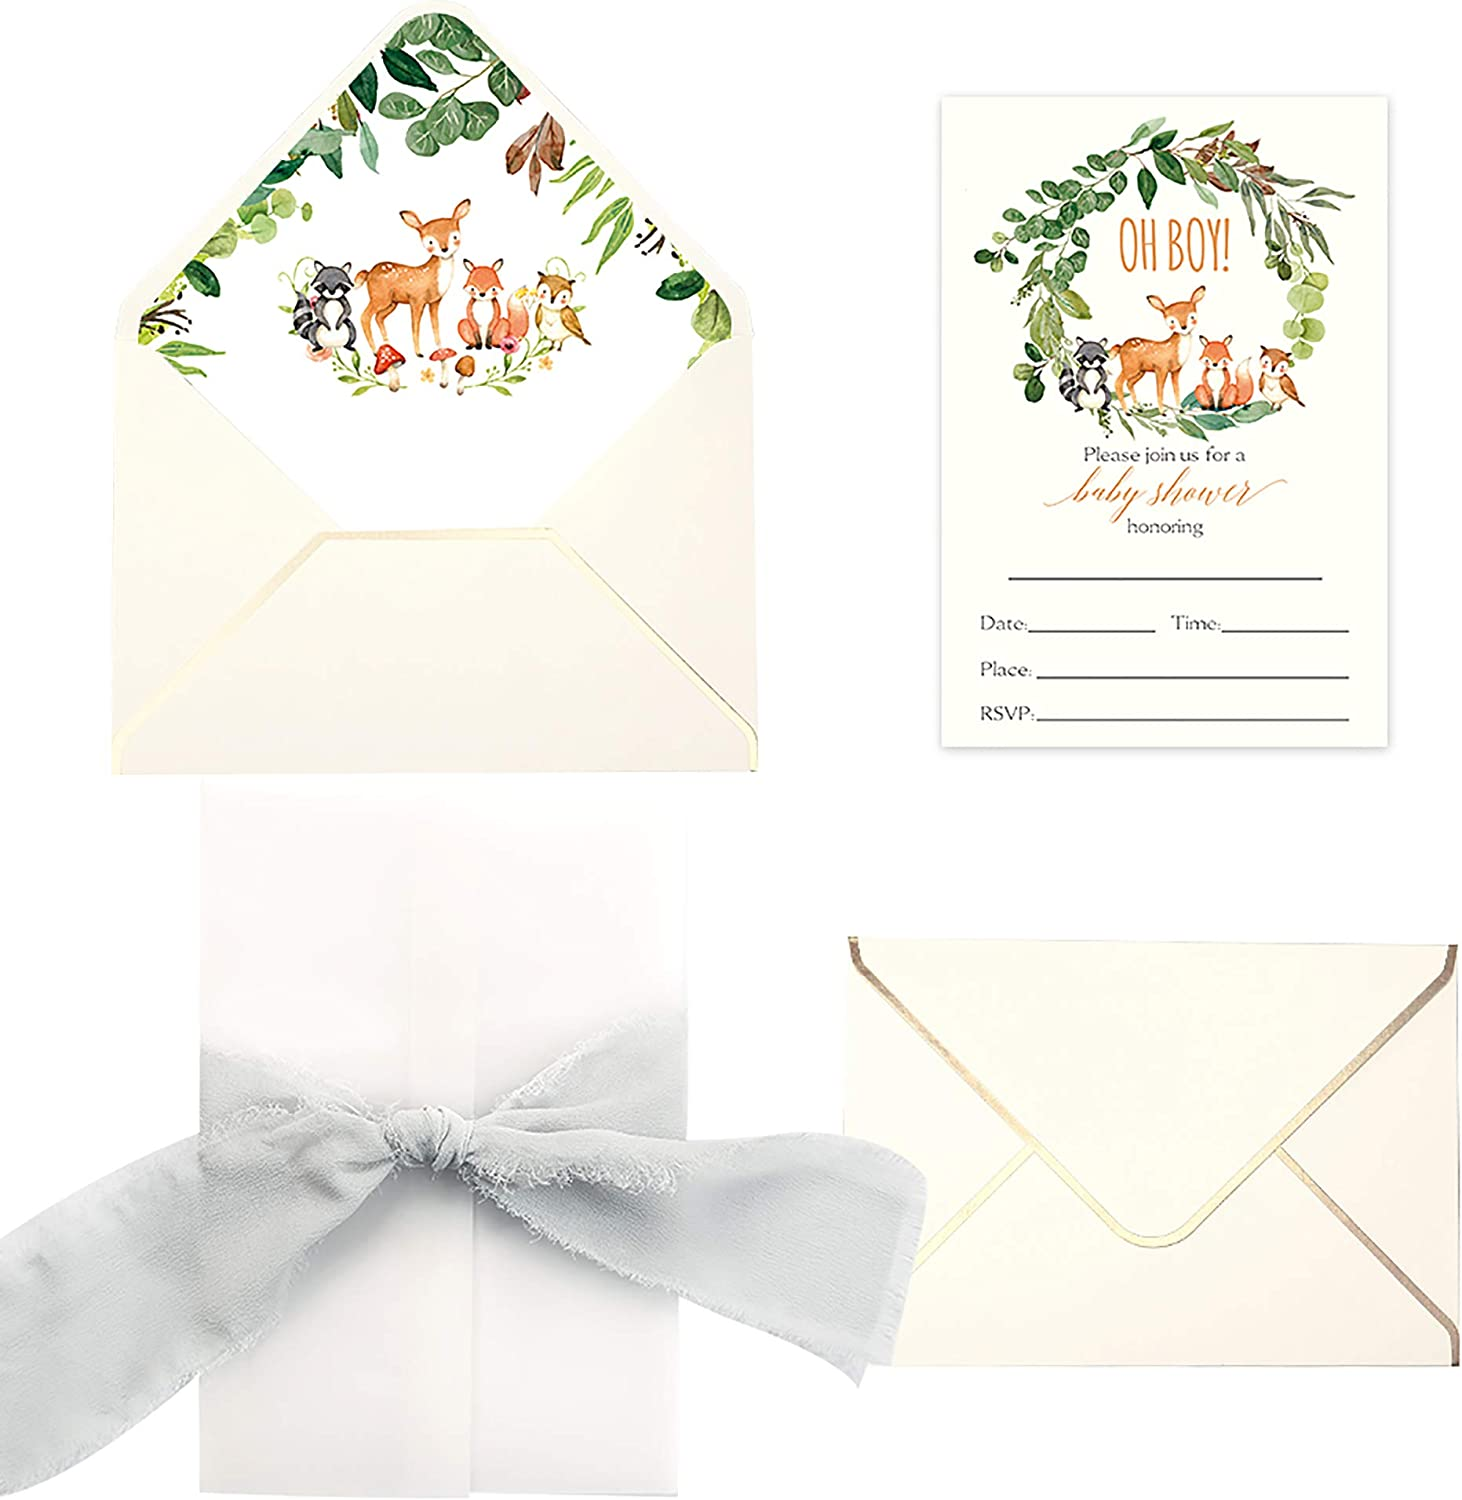 Doris Home 25pcs Fill in Baby Shower Invitations with Fawns and Fox Design, Gray Chiffon Ribbon and Cream Envelope for Baby Boy